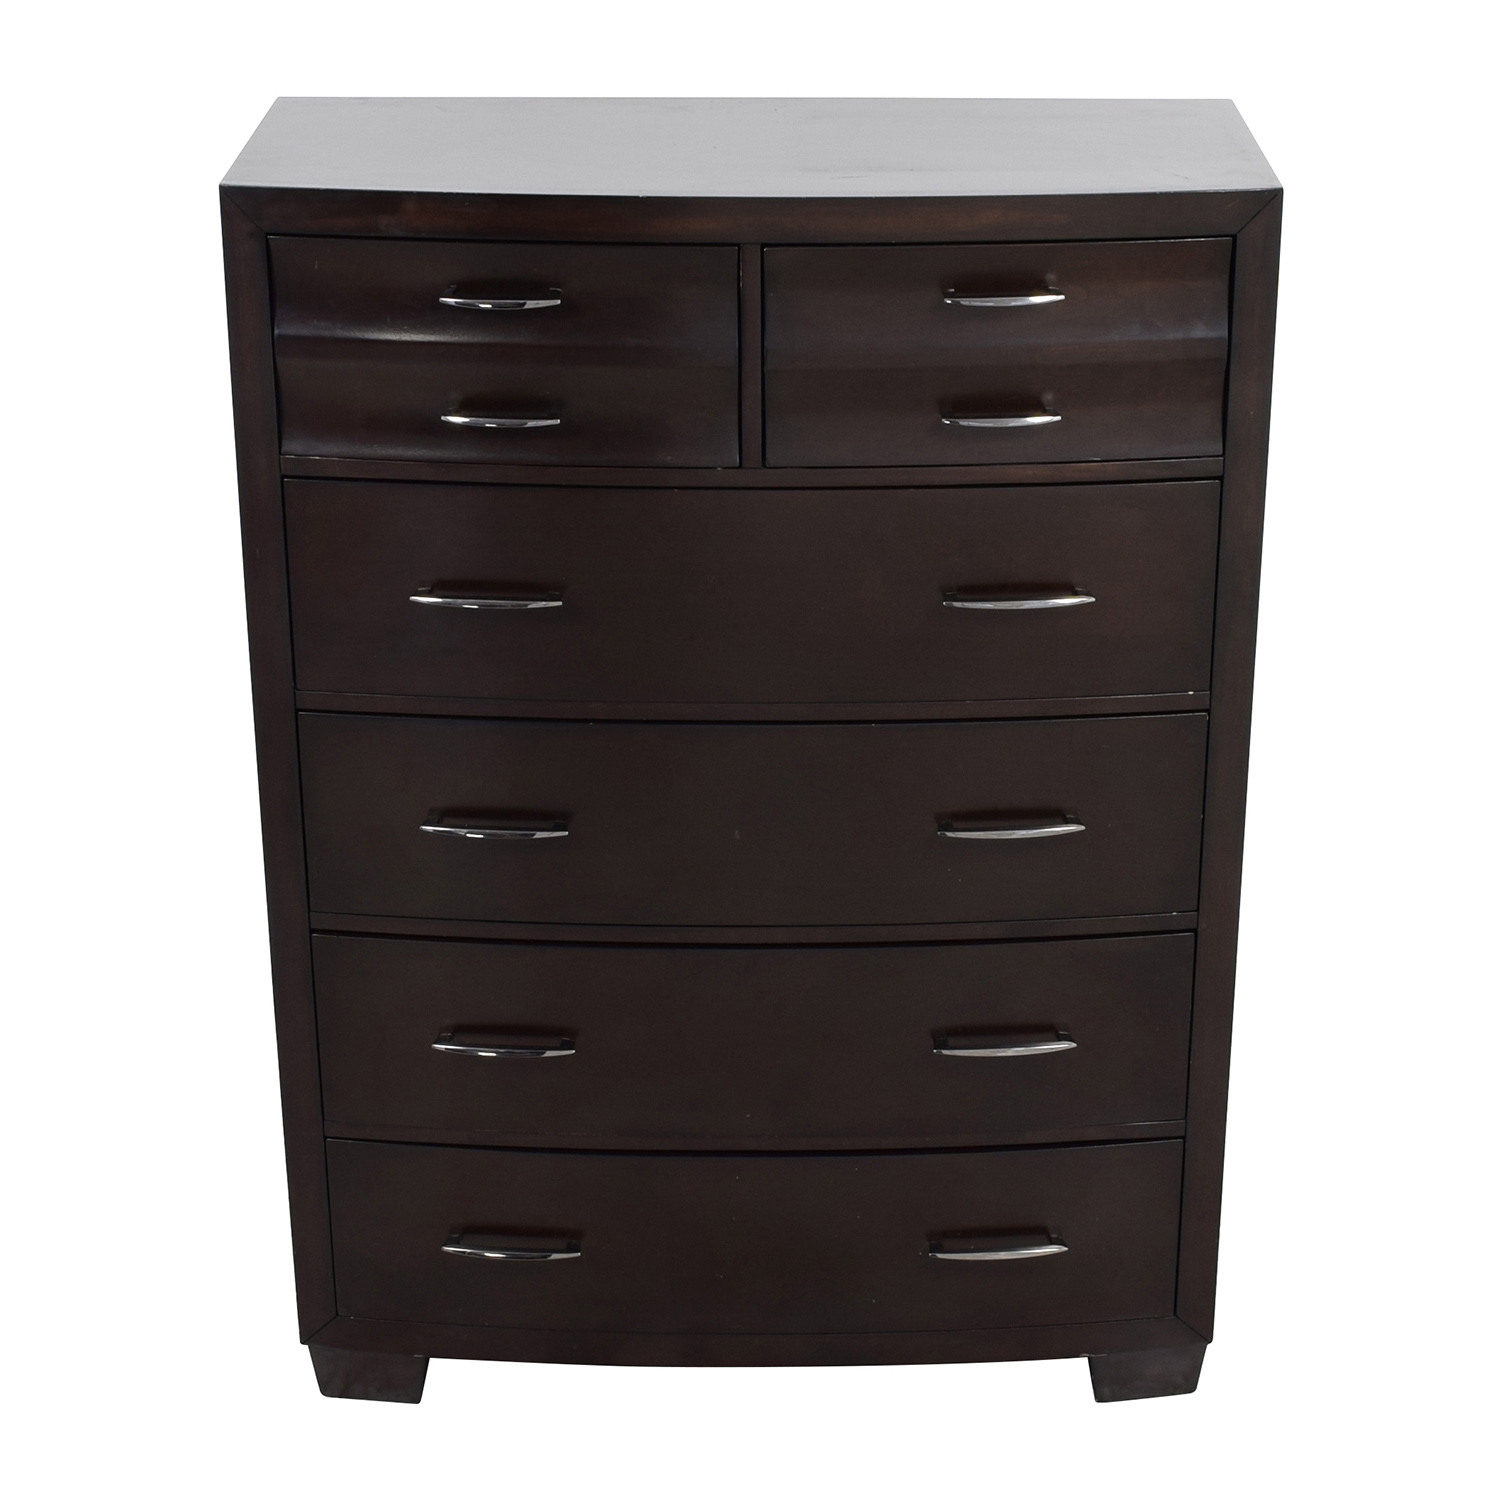 Home Meridian Home Meridian Six-Drawer Dresser dimensions